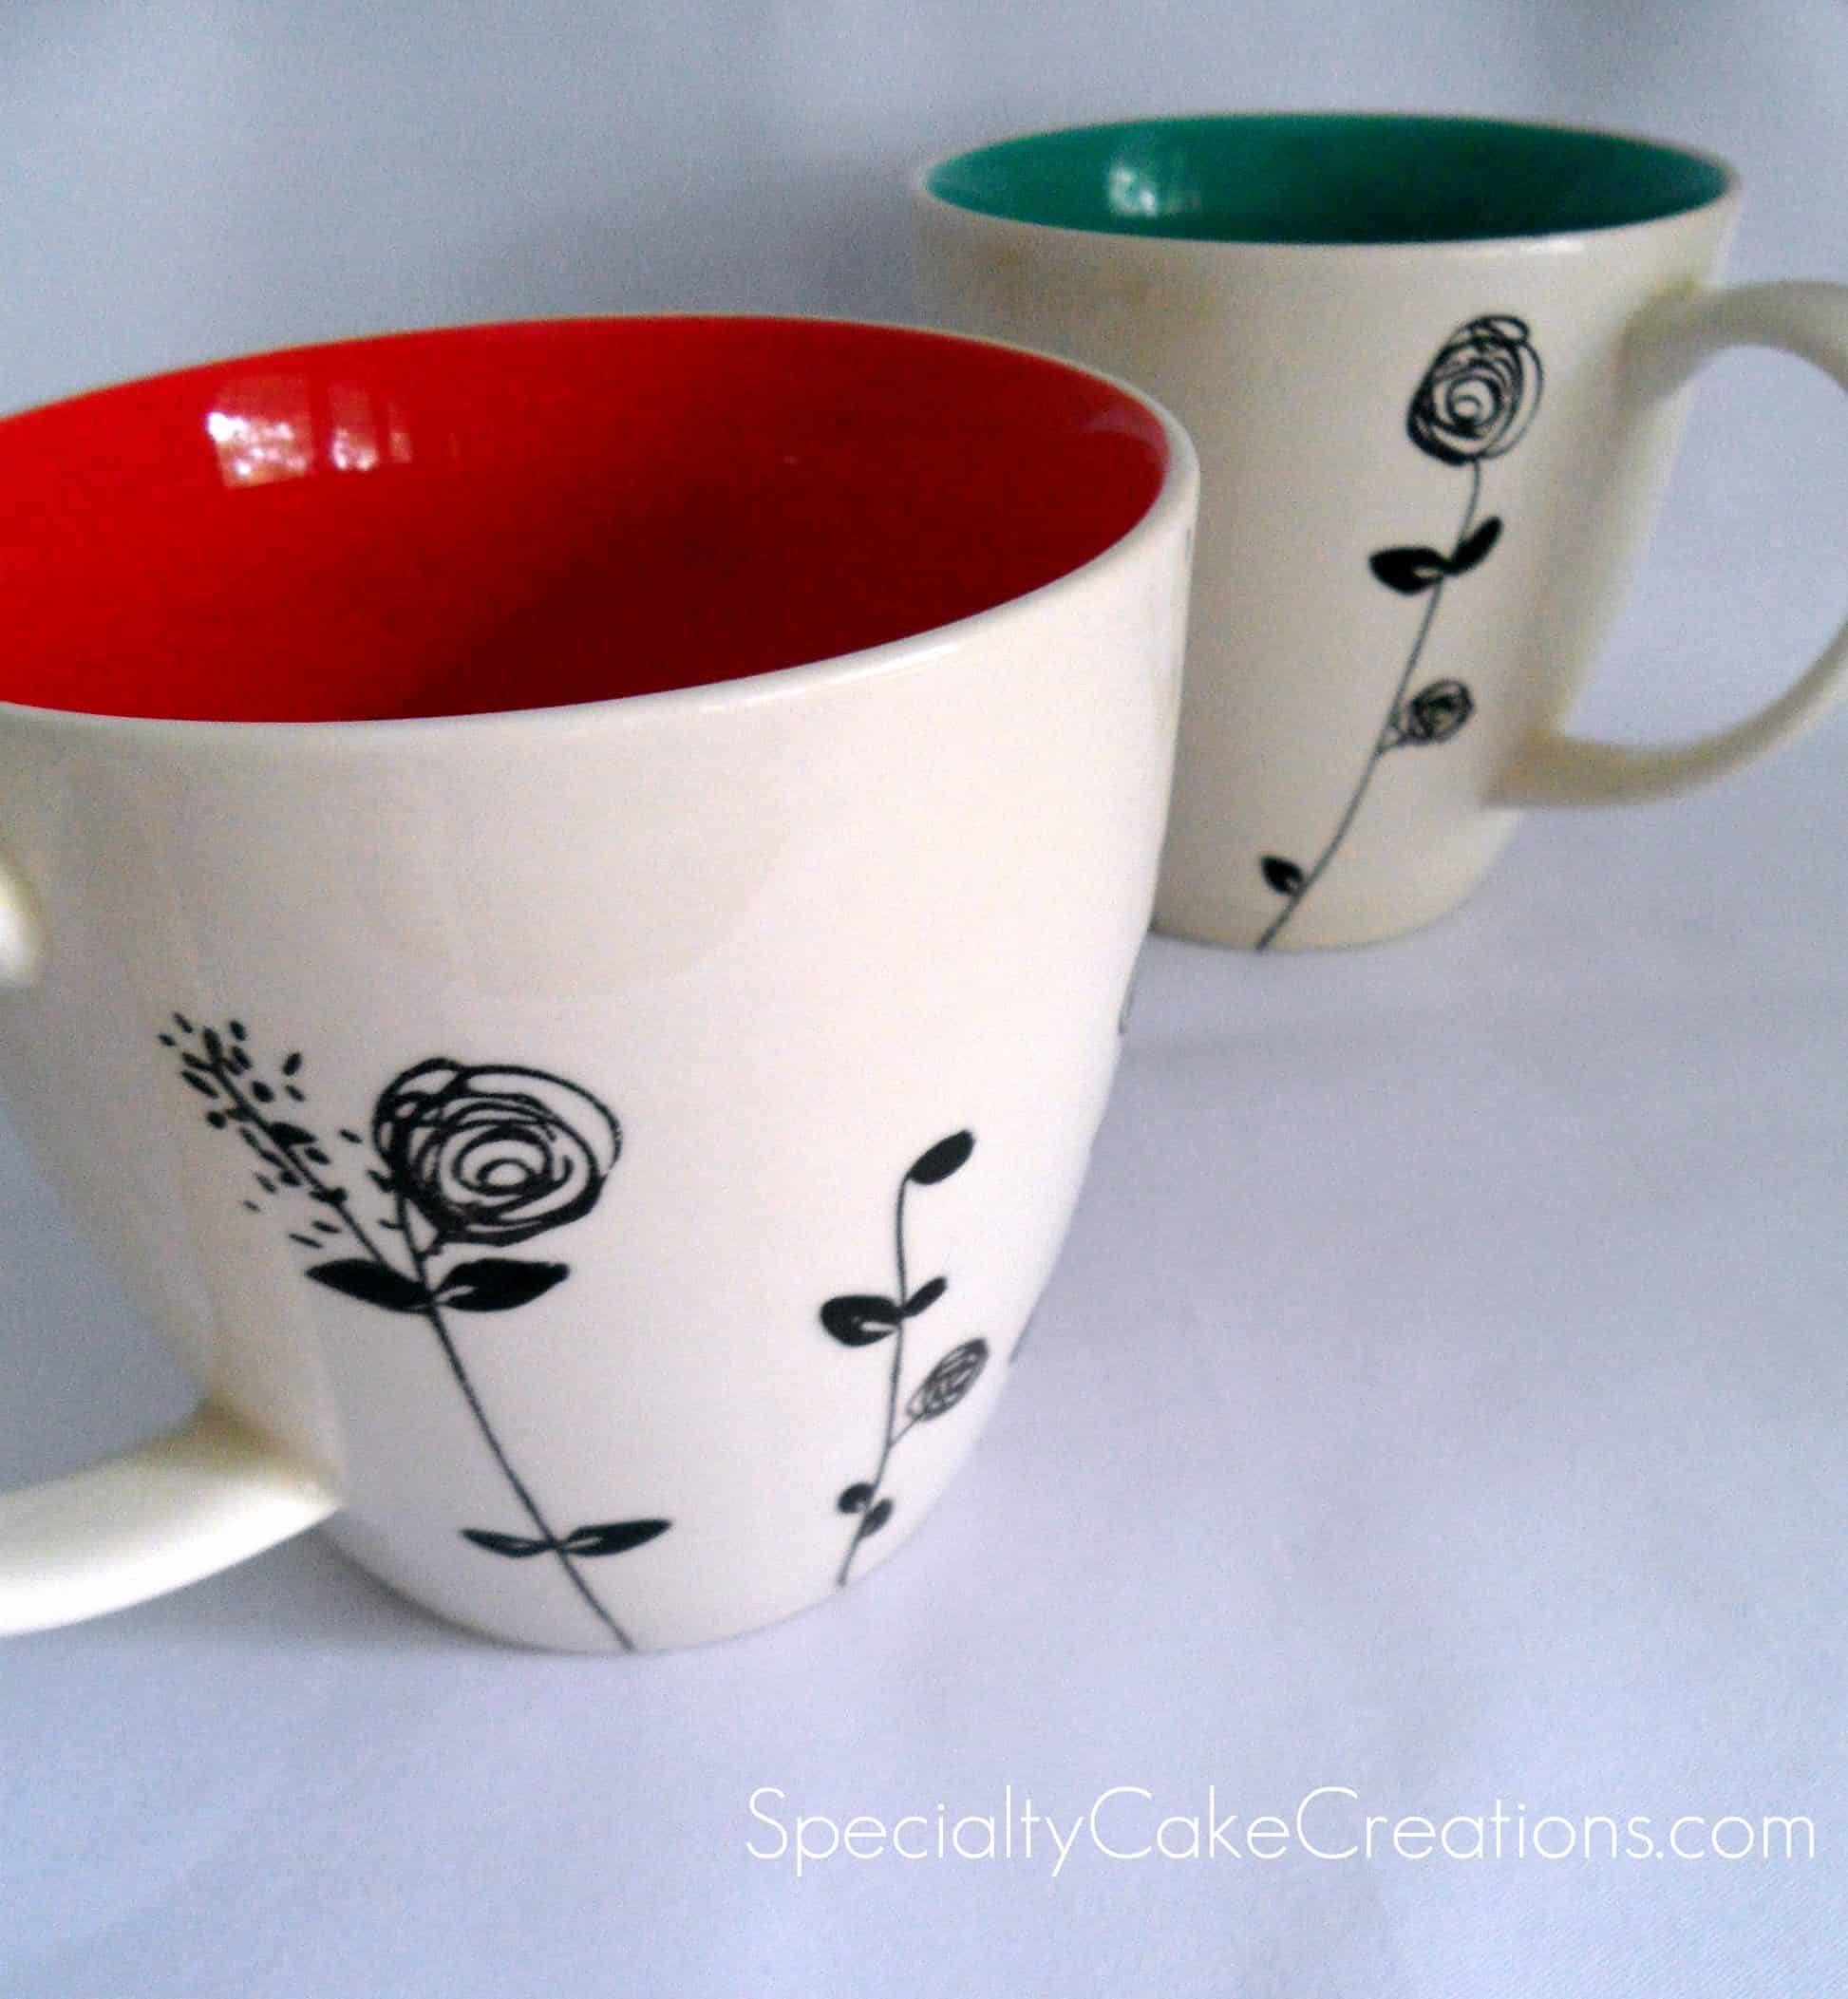 Speciality Coffee Mugs Black On White Flowers Cookies